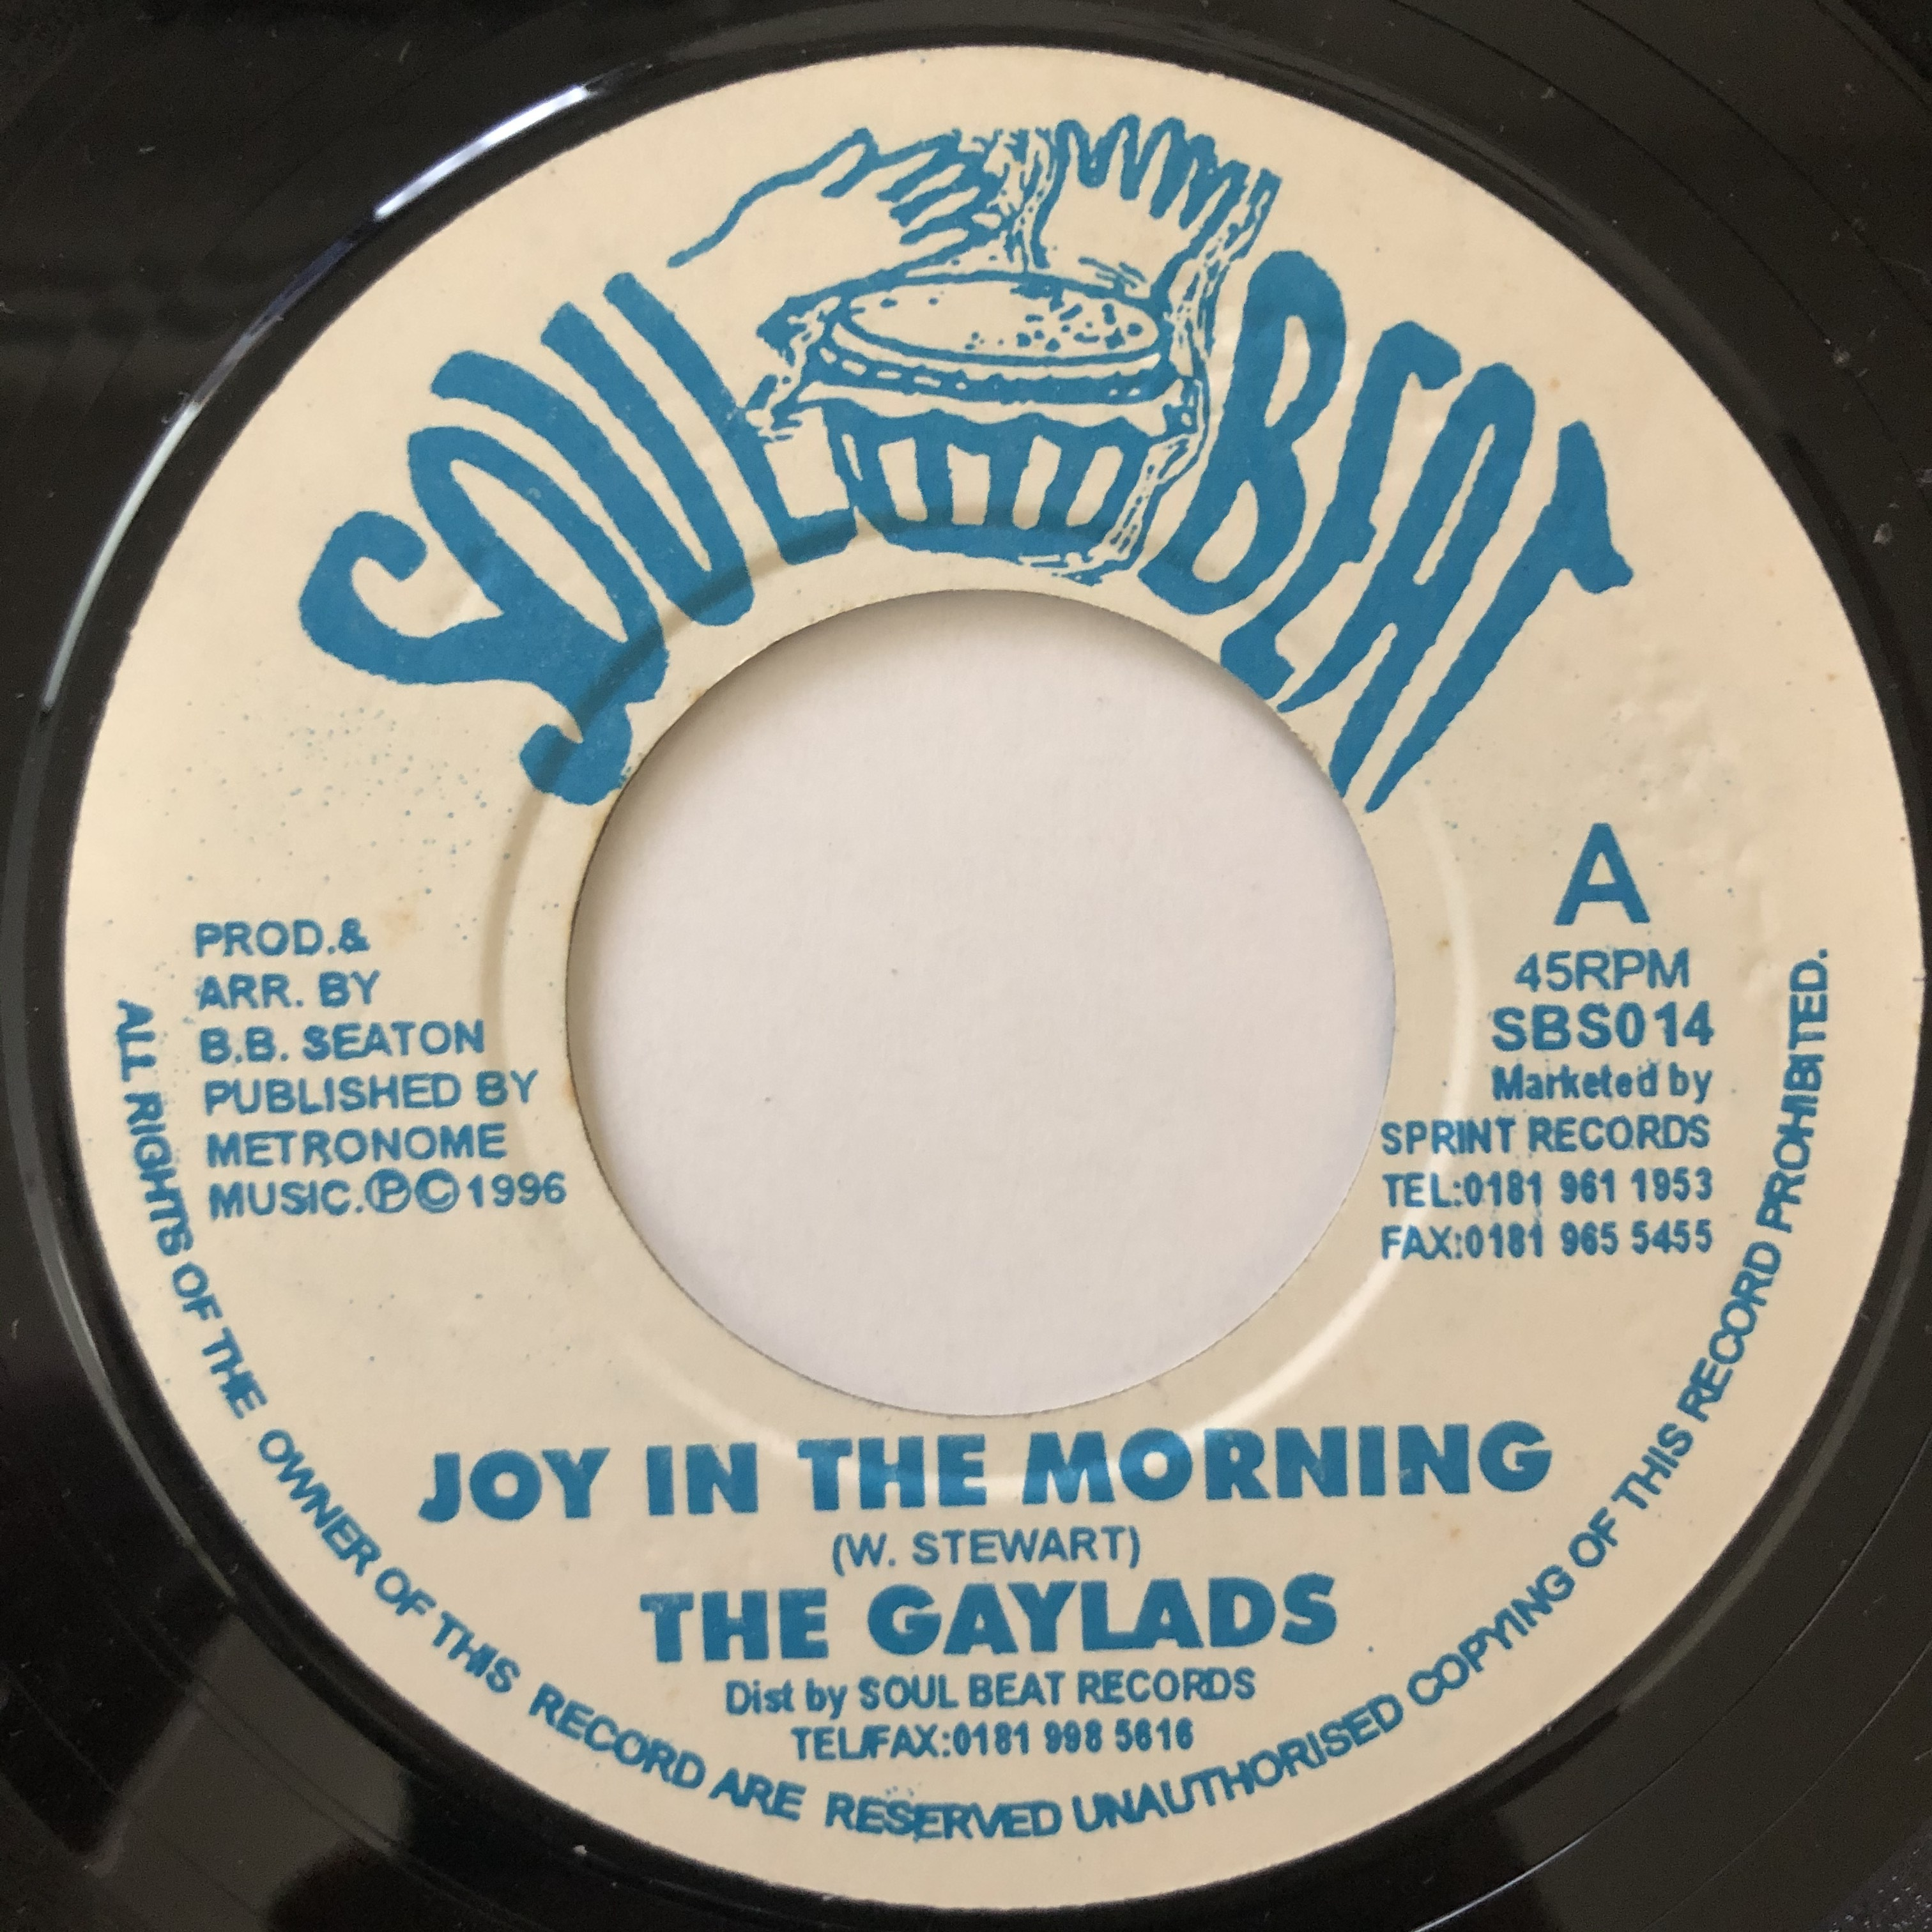 The Gaylads - Joy In The Morning【7-20658】